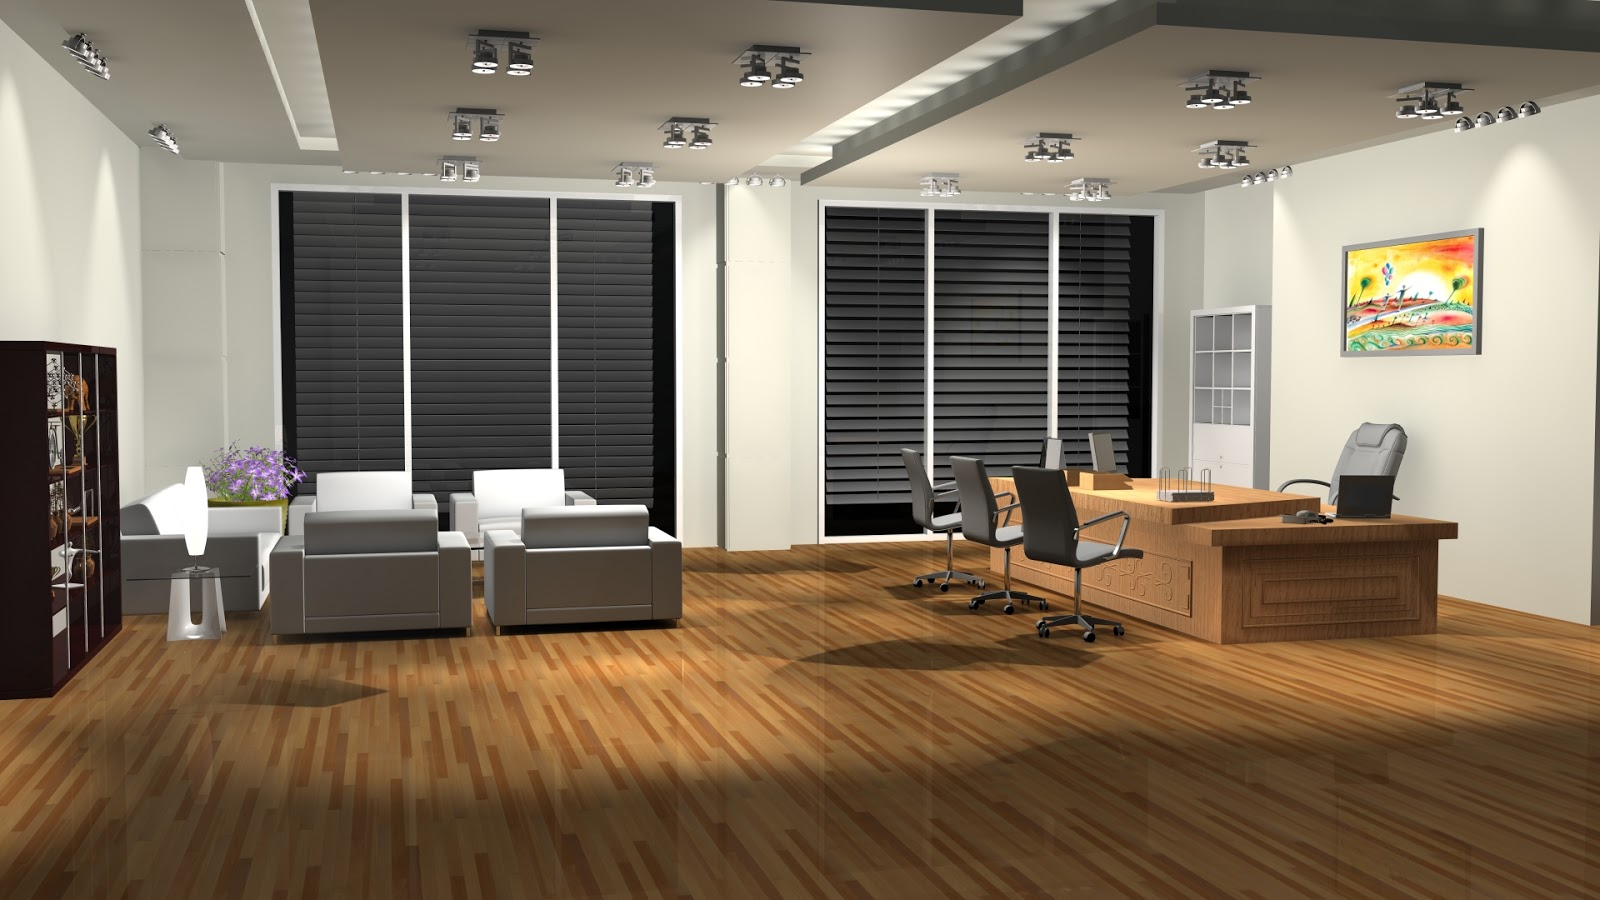 Sajid designs office room 3d interior design 3ds max for 3d interior design online